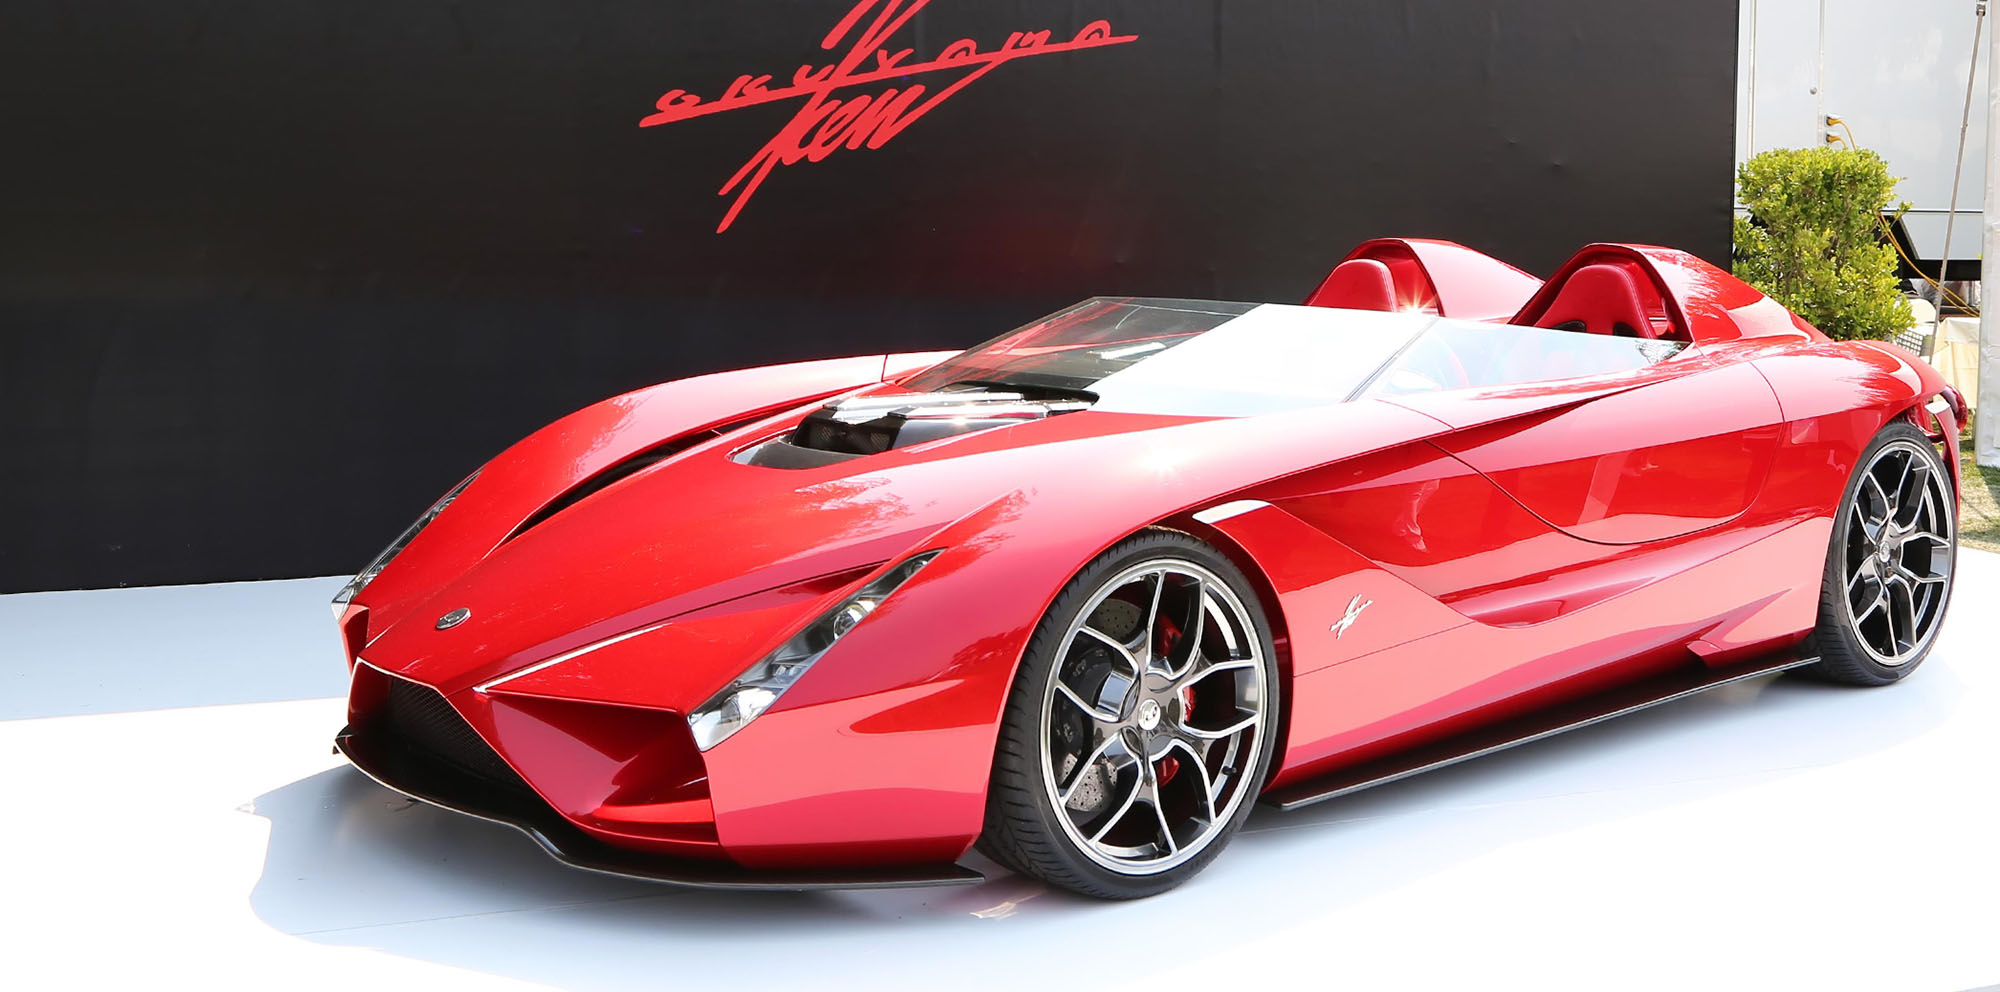 Kode57 Ferrari Based Speedster Unveiled In California